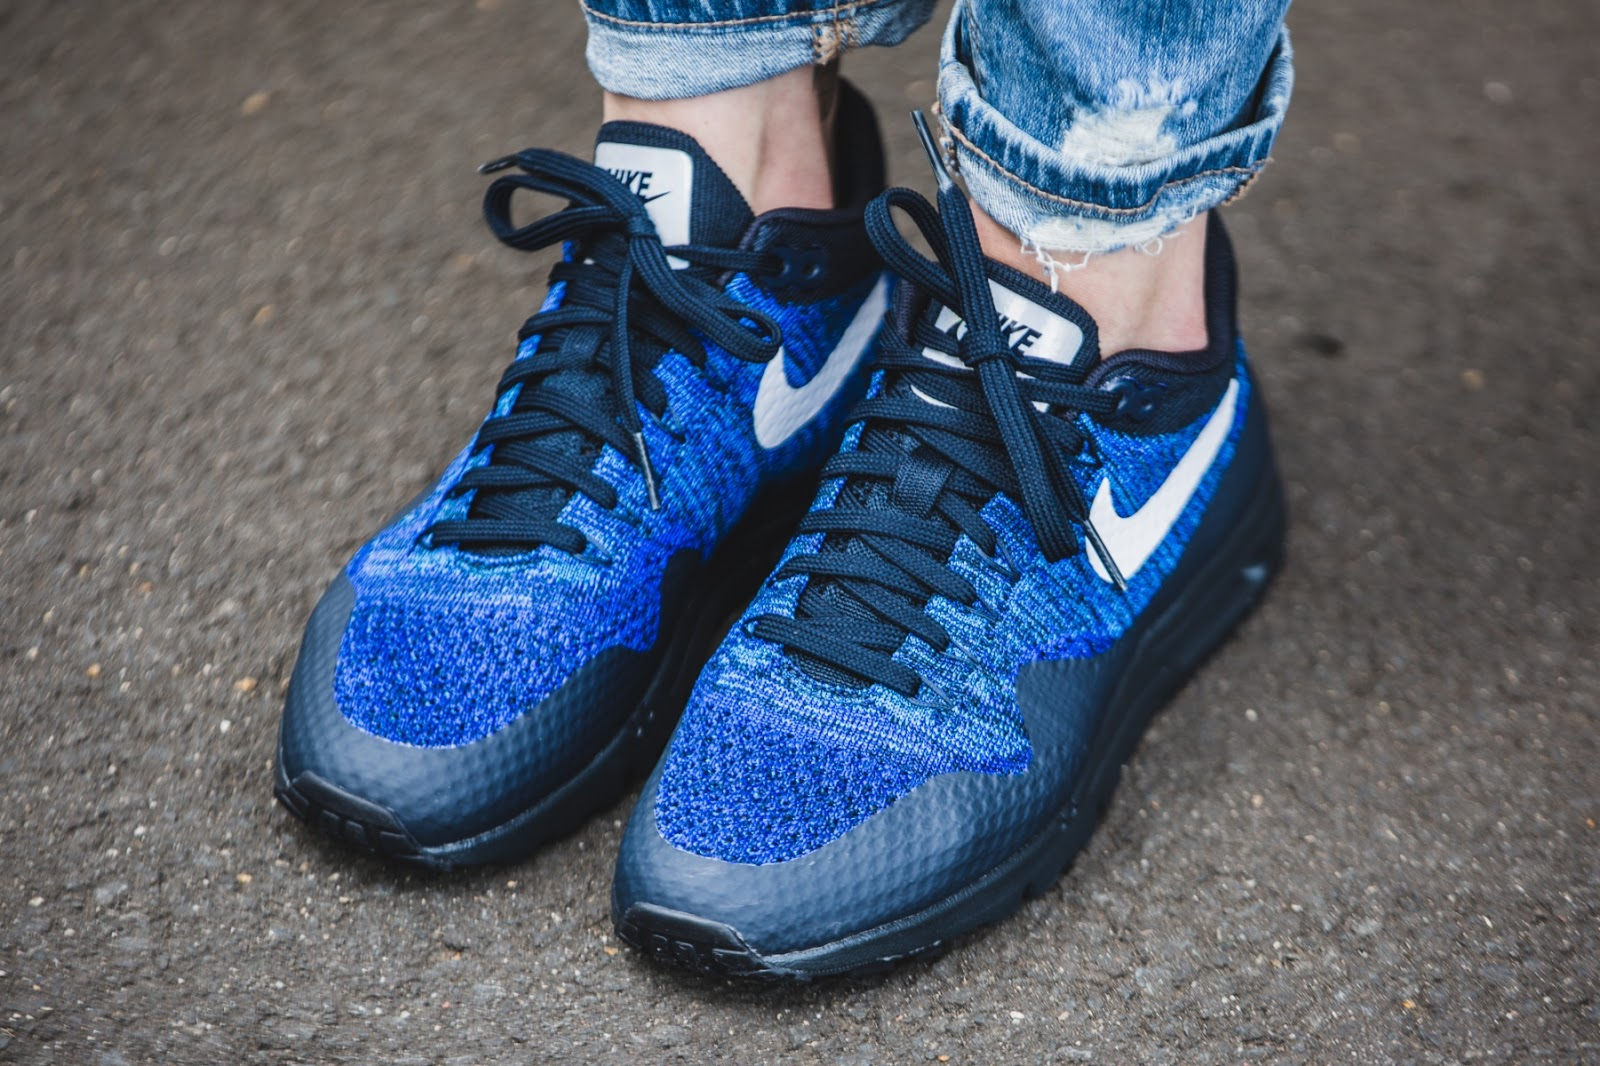 finest selection 4f850 2178a Nike WMNS Air Max 1 Ultra Flyknit (blue / black).